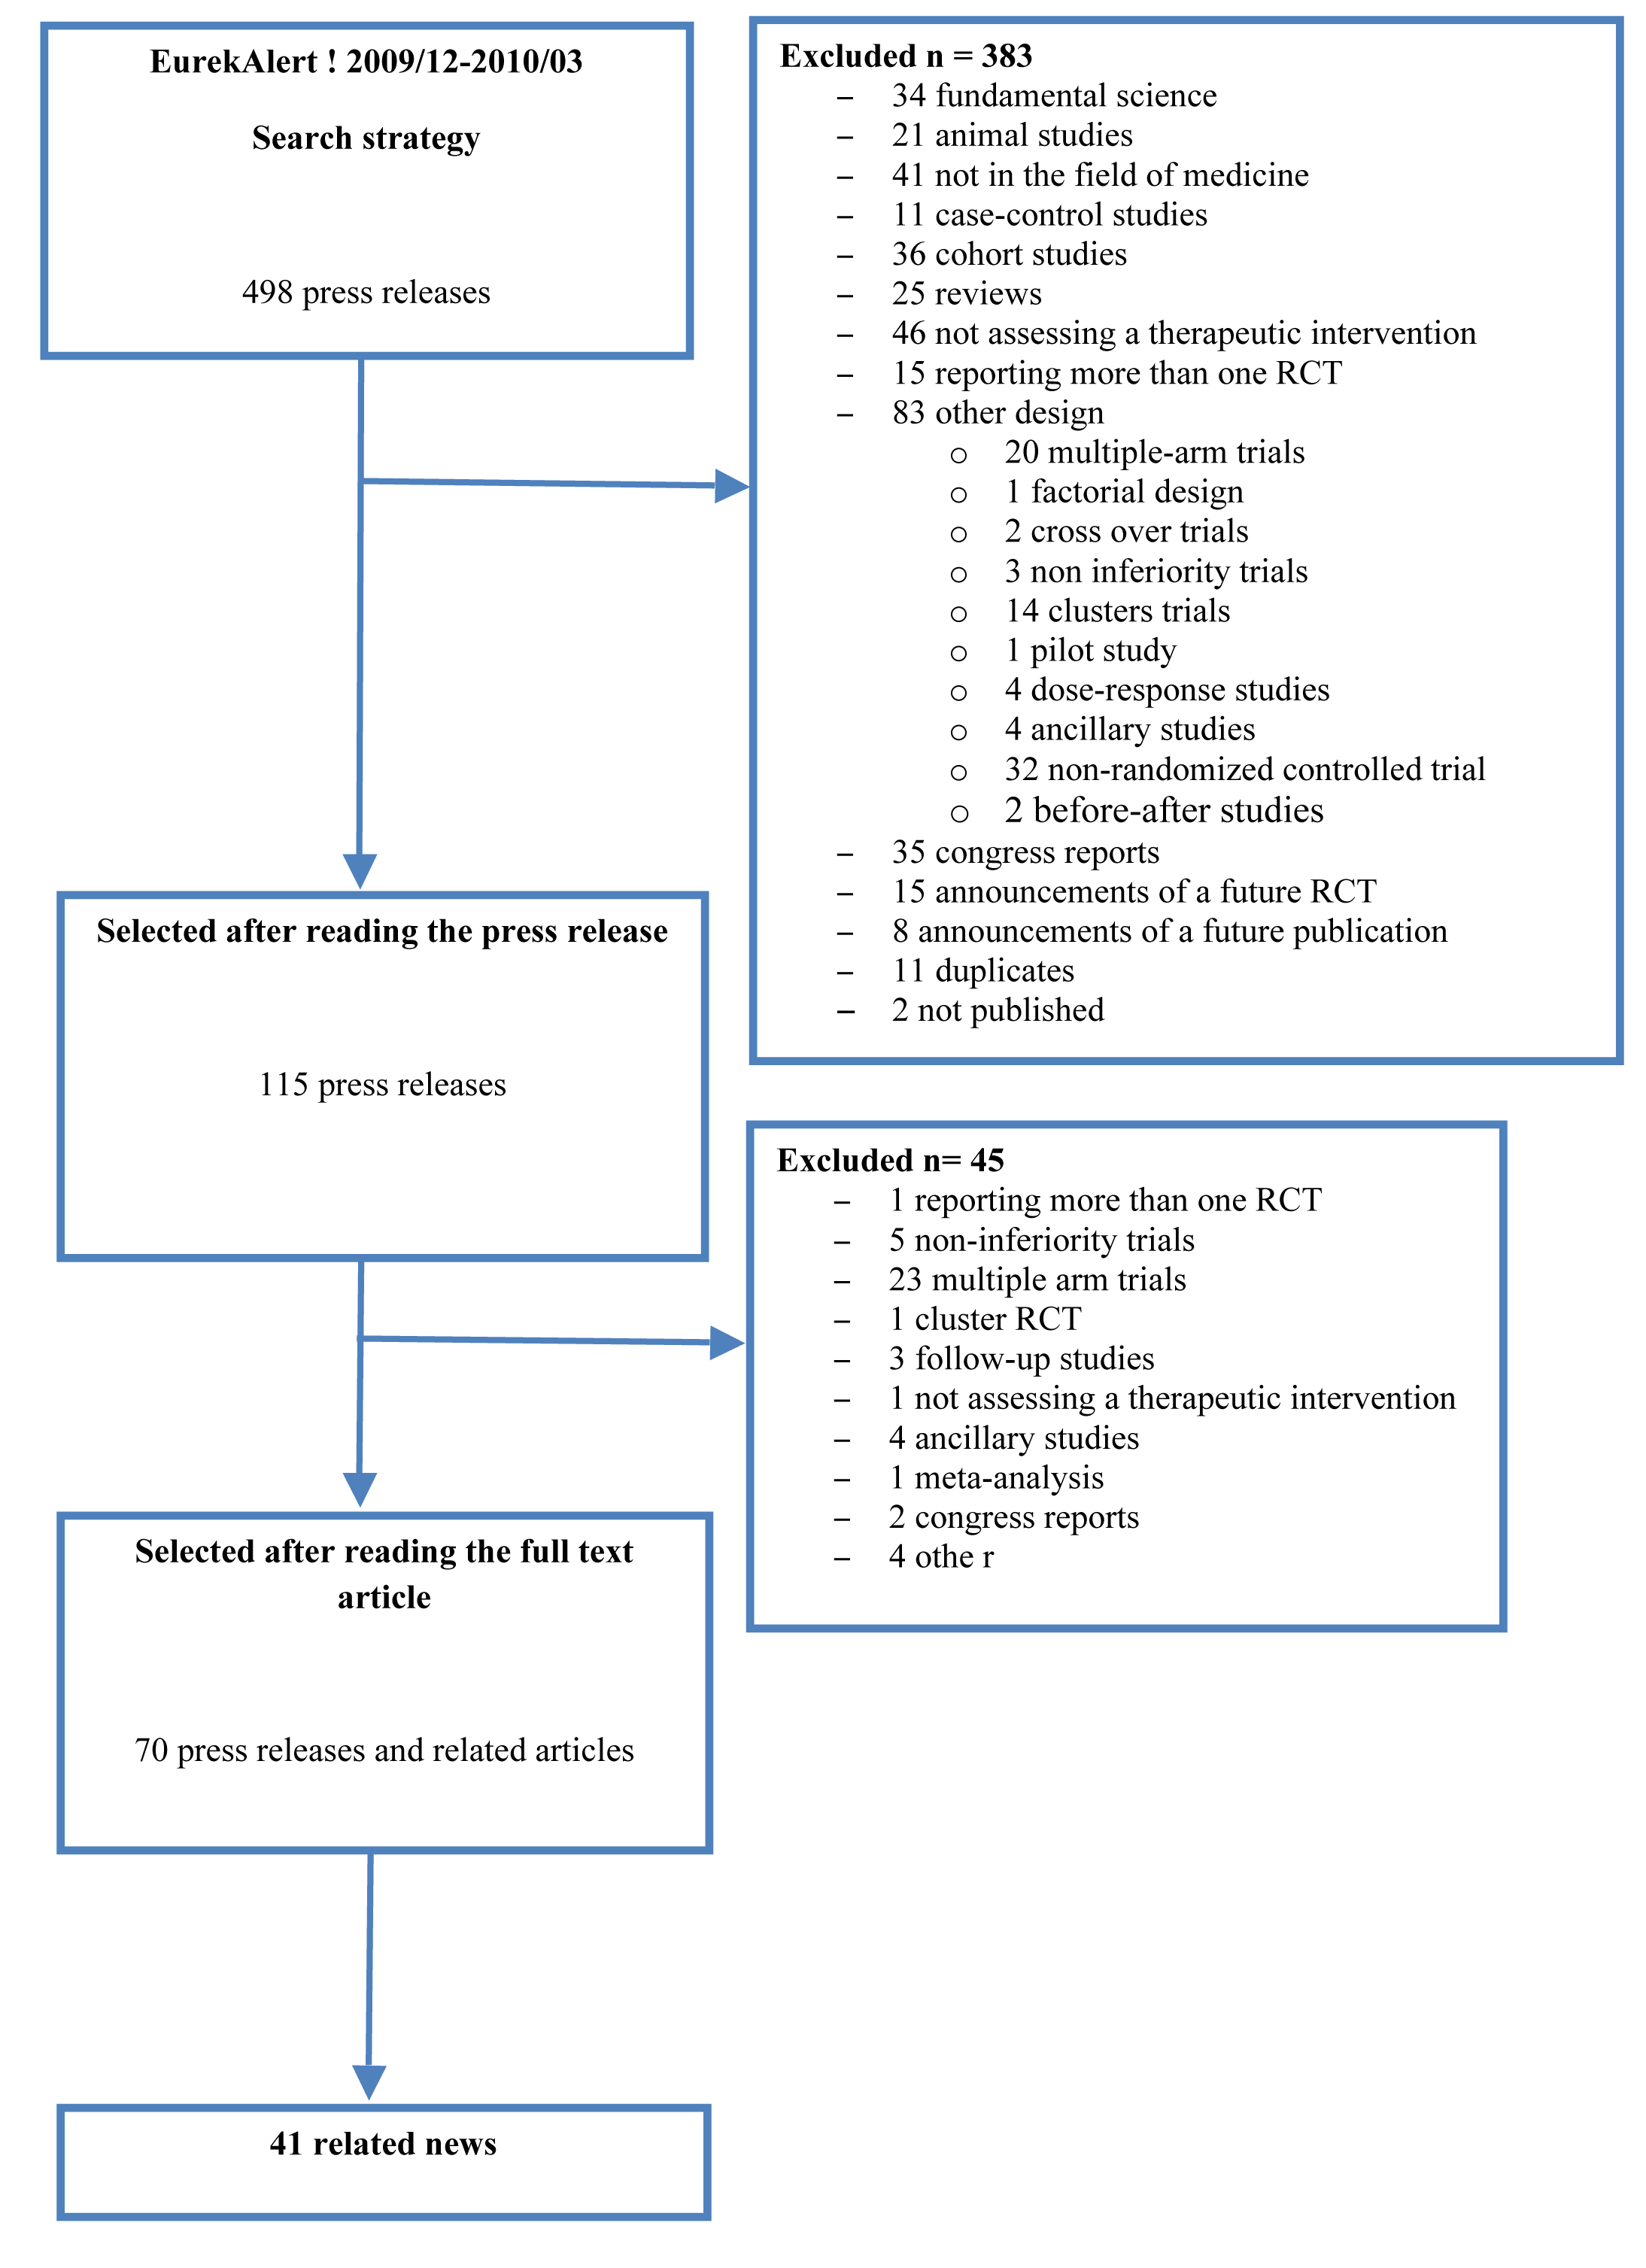 Flow diagram of the selected press releases and related articles.